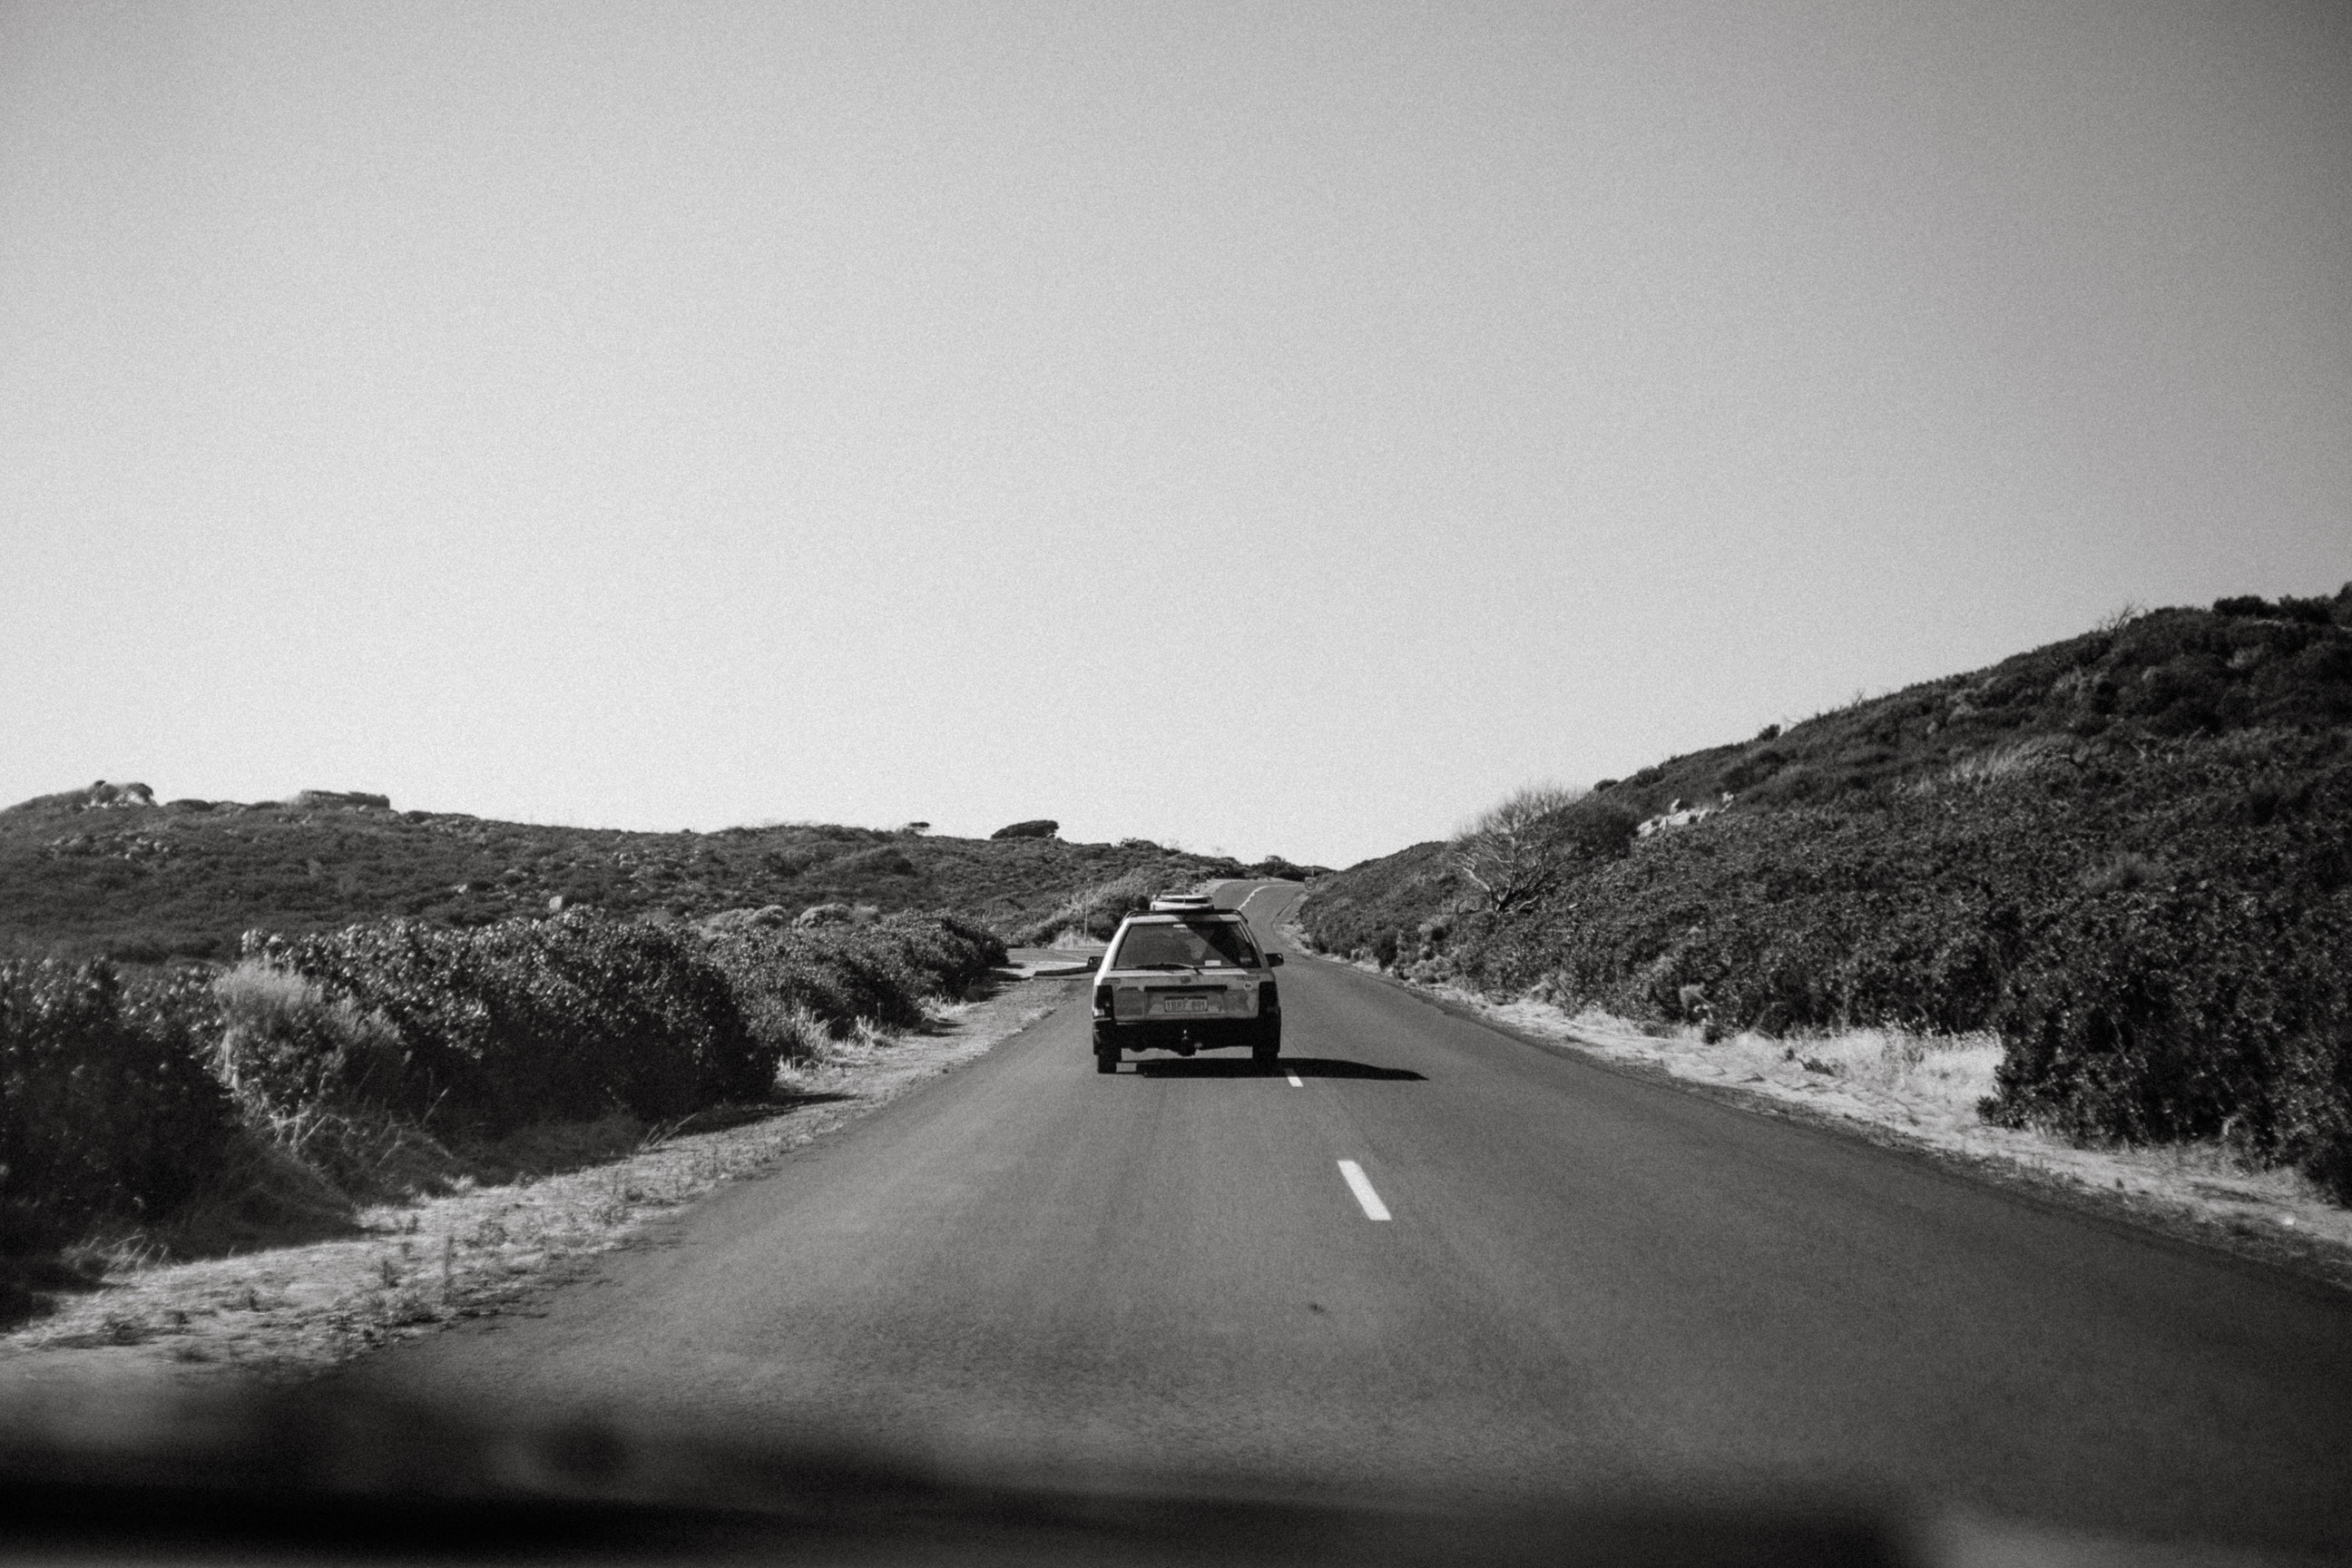 The long way round: hitchhiking in Turkey